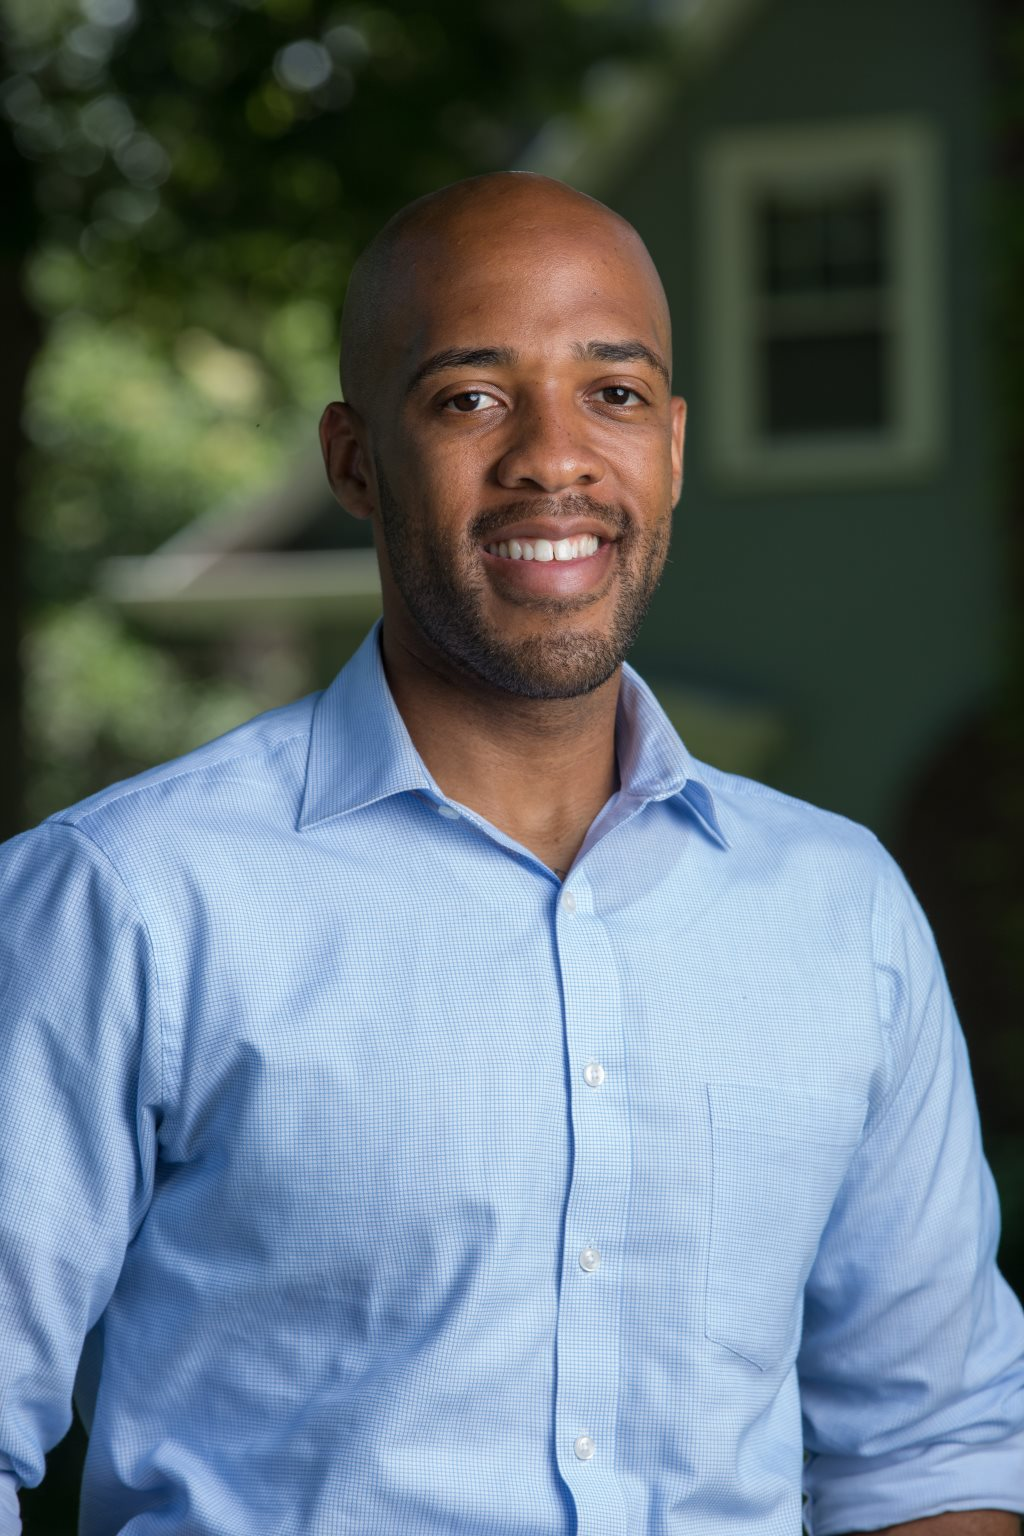 2018 WI Supreme Court candidate Tim Burns endorses Mandela Barnes for Lt. Governor